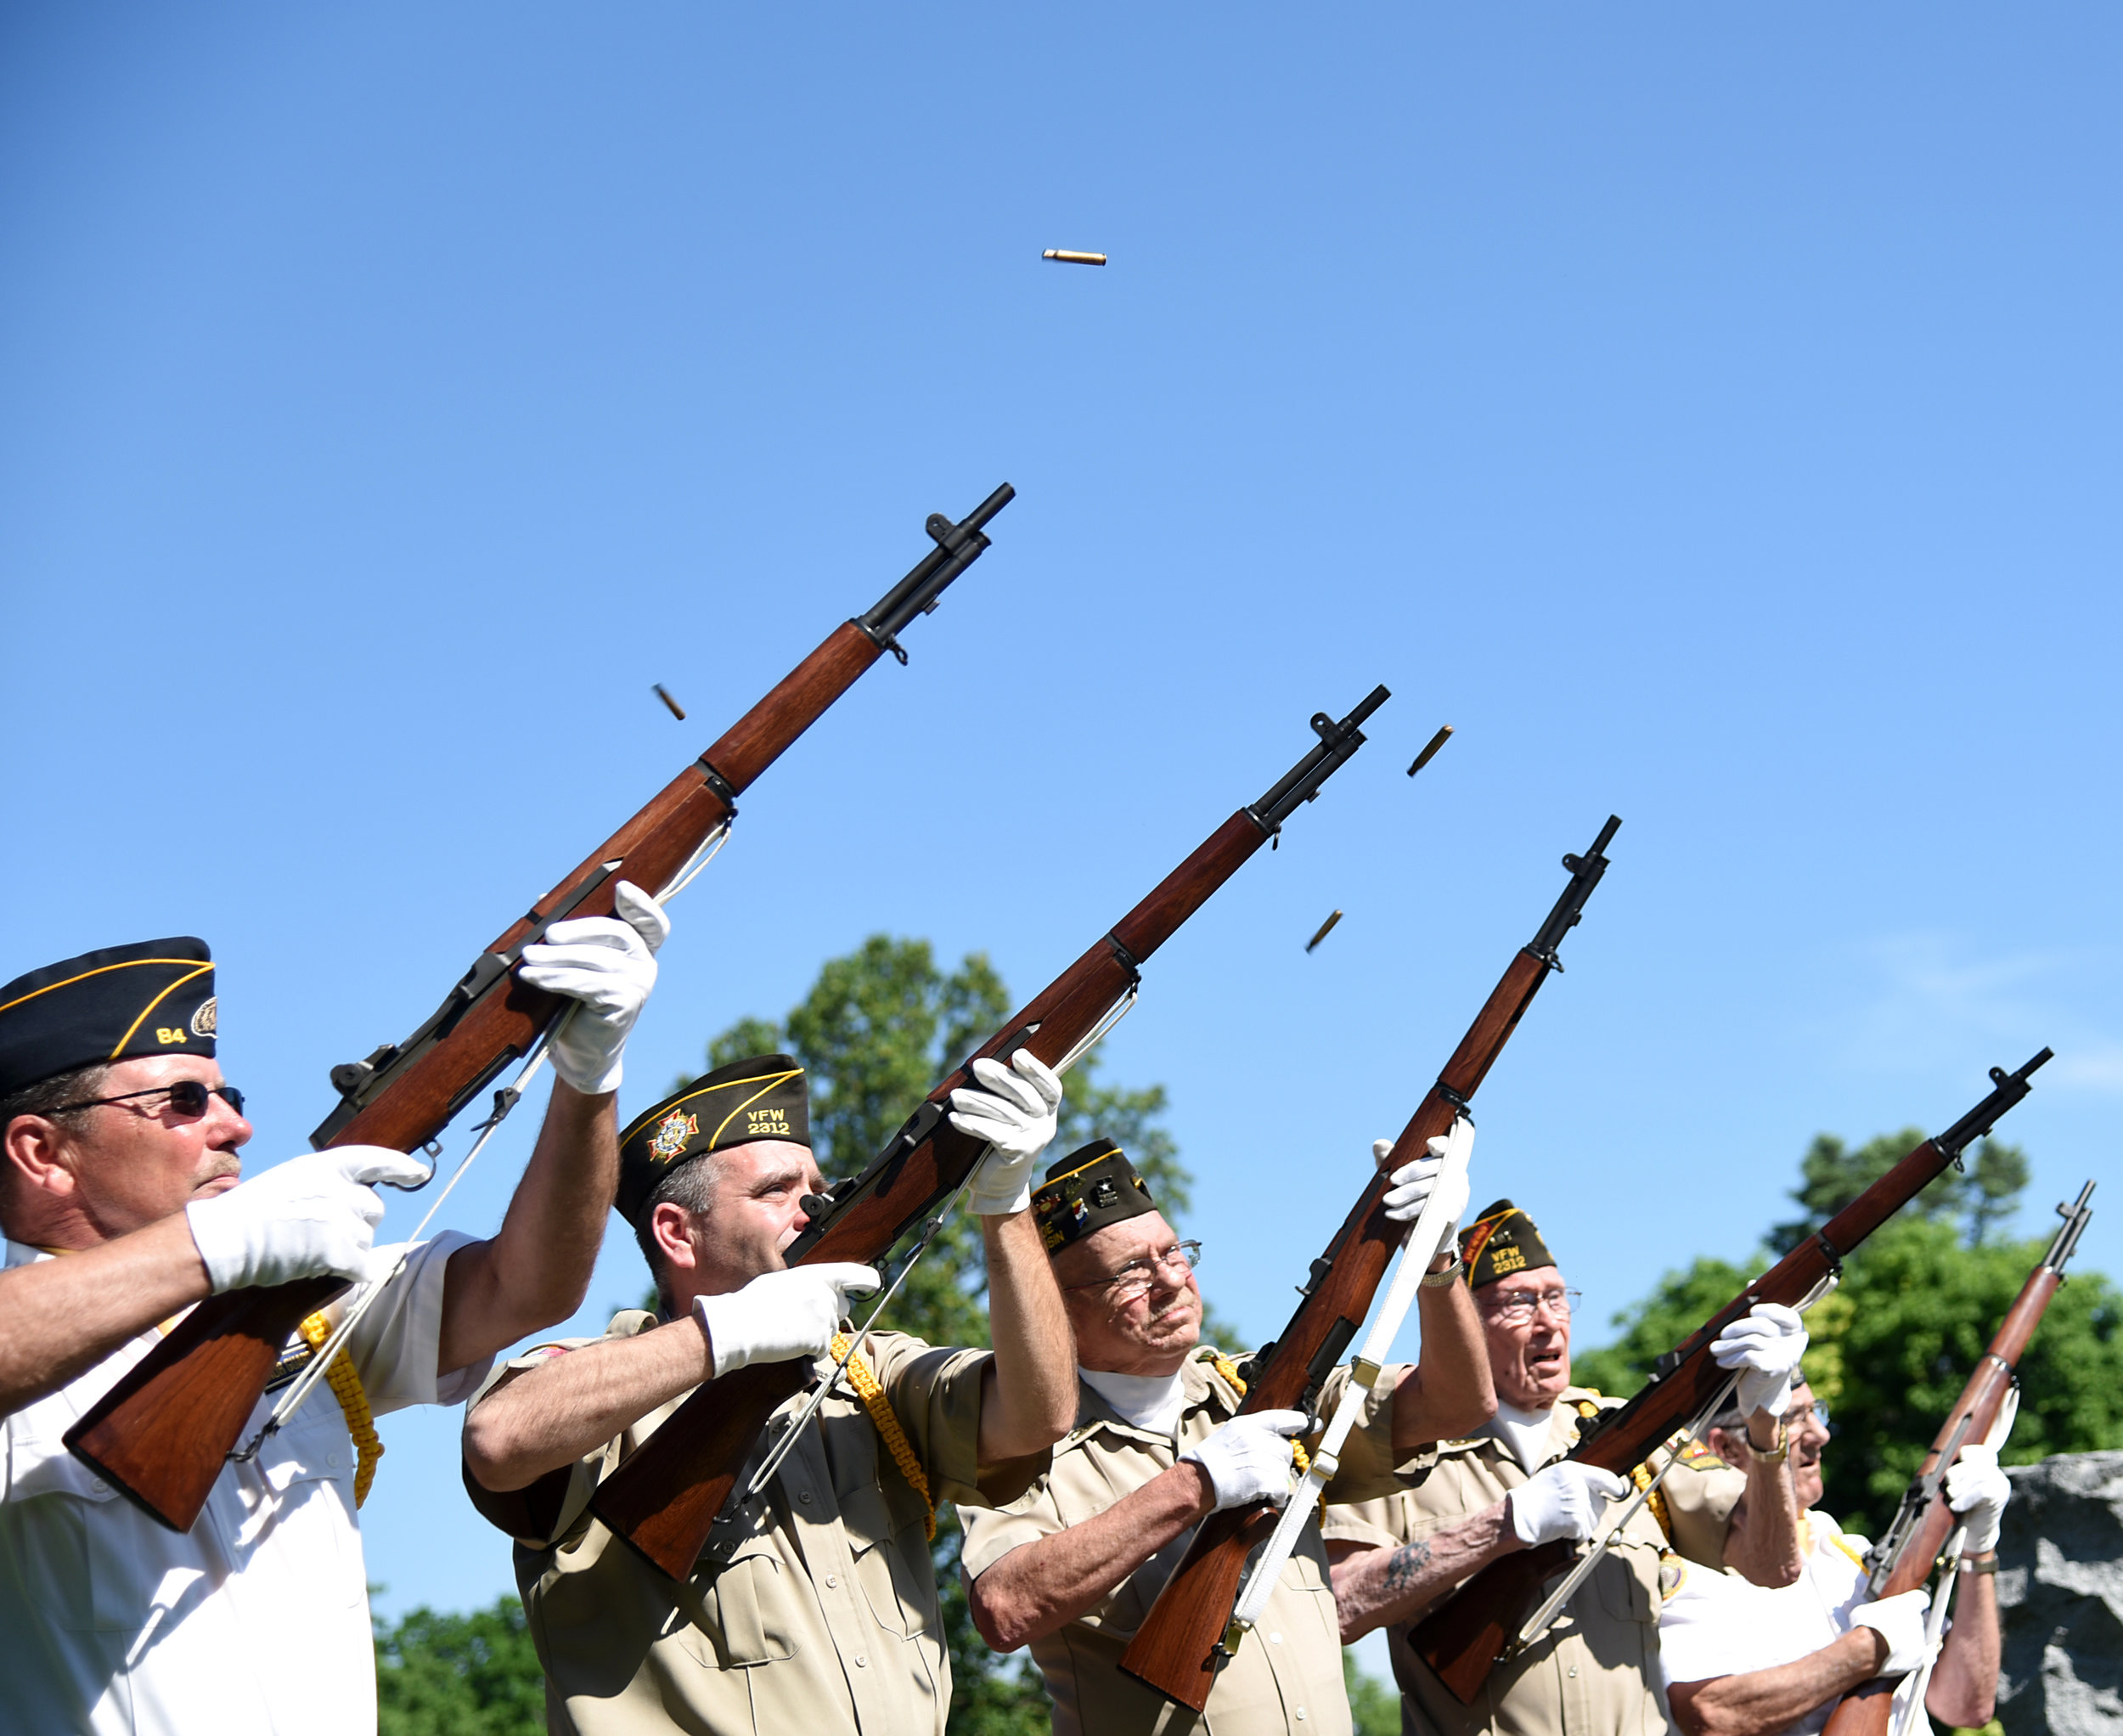 American Legion members Jim Moser, Lucian Lemak, Bill Haffele, Alvie Riese, and Al Buri shoot during the Memorial Day Ceremony at the Cemetery May 30, 2016.